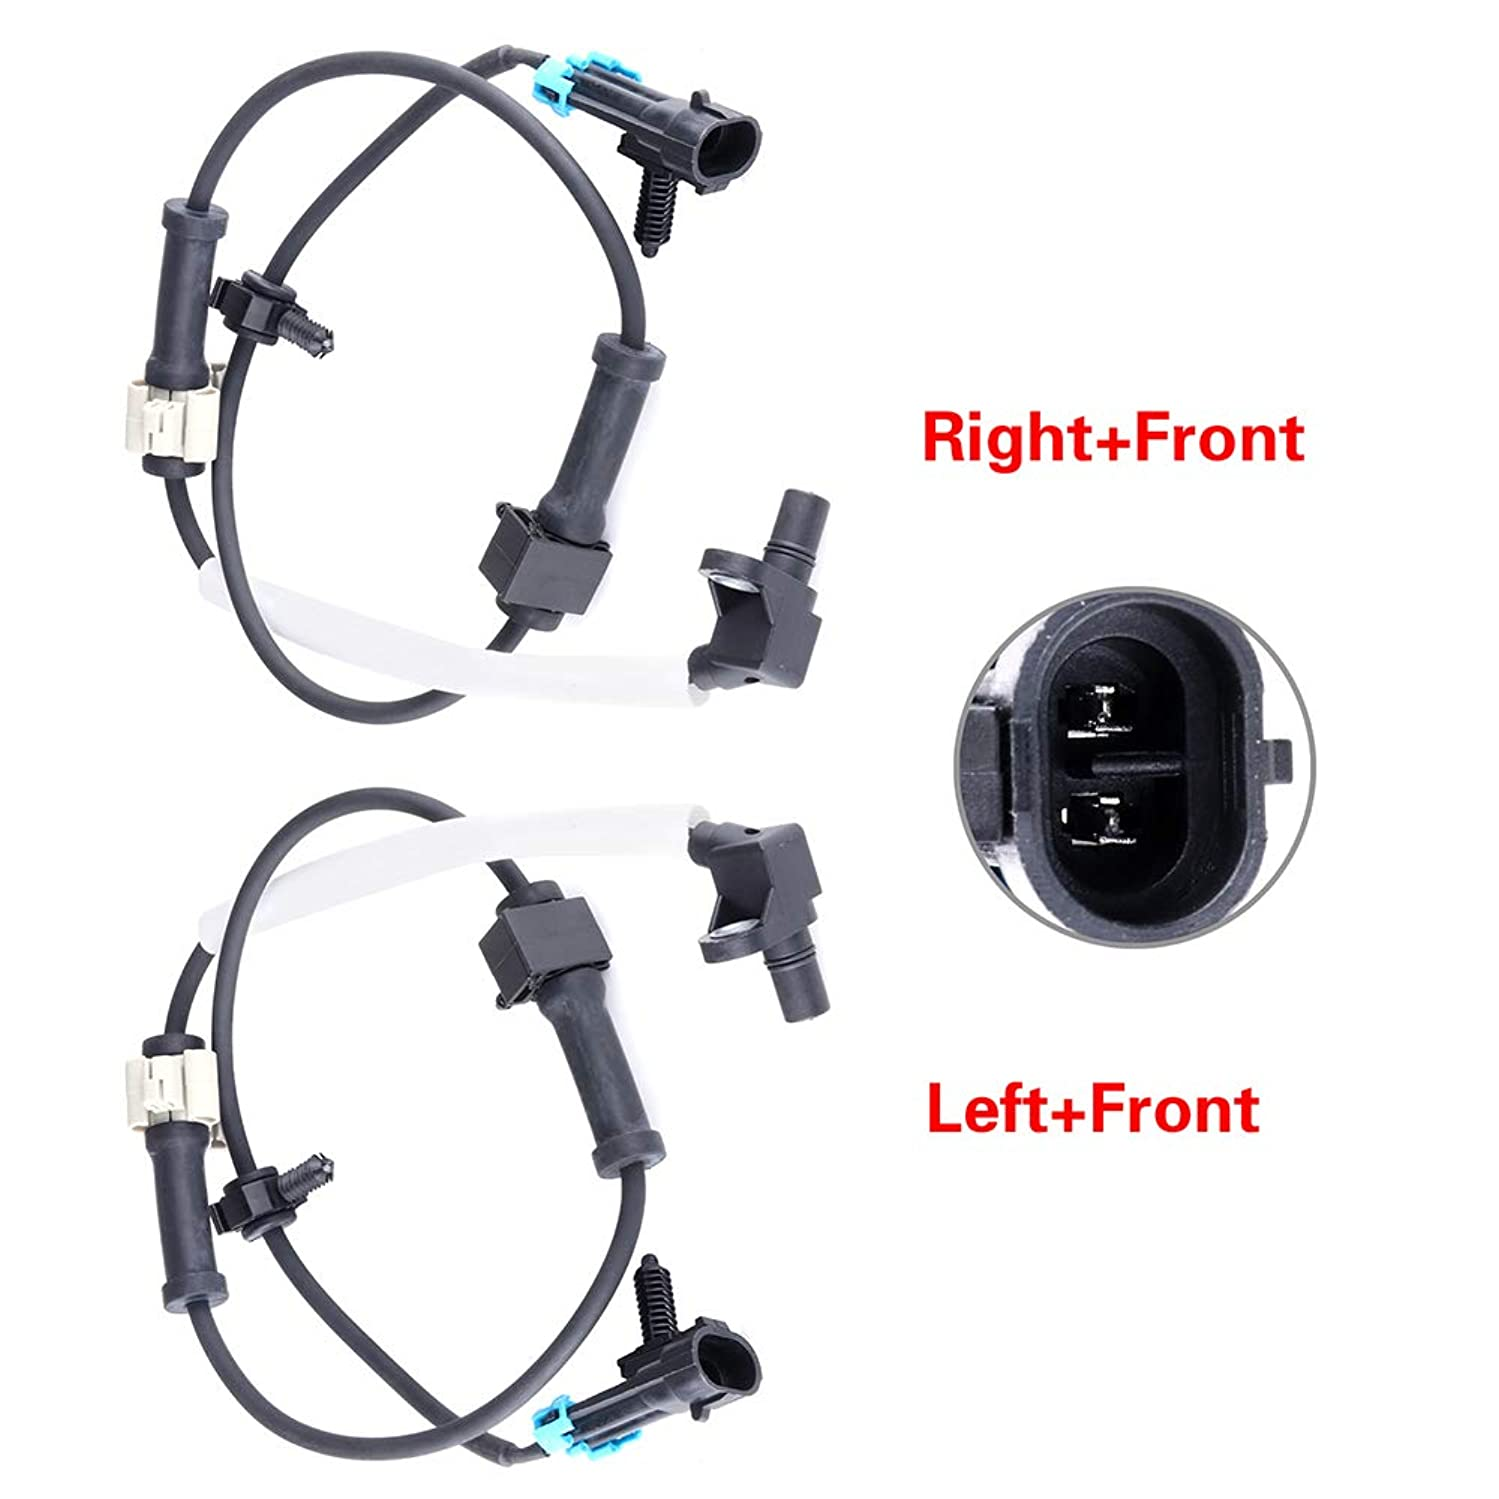 TUPARTS 2 x Left Right Front ALS483 ABS Wheel Speed sensors fit for Chevy Avalanche 2500/Silverado 1500/2500/3500/Suburban 2500, GMC Sierra 1500/2500/3500/Yukon XL 2500,Hummer H2